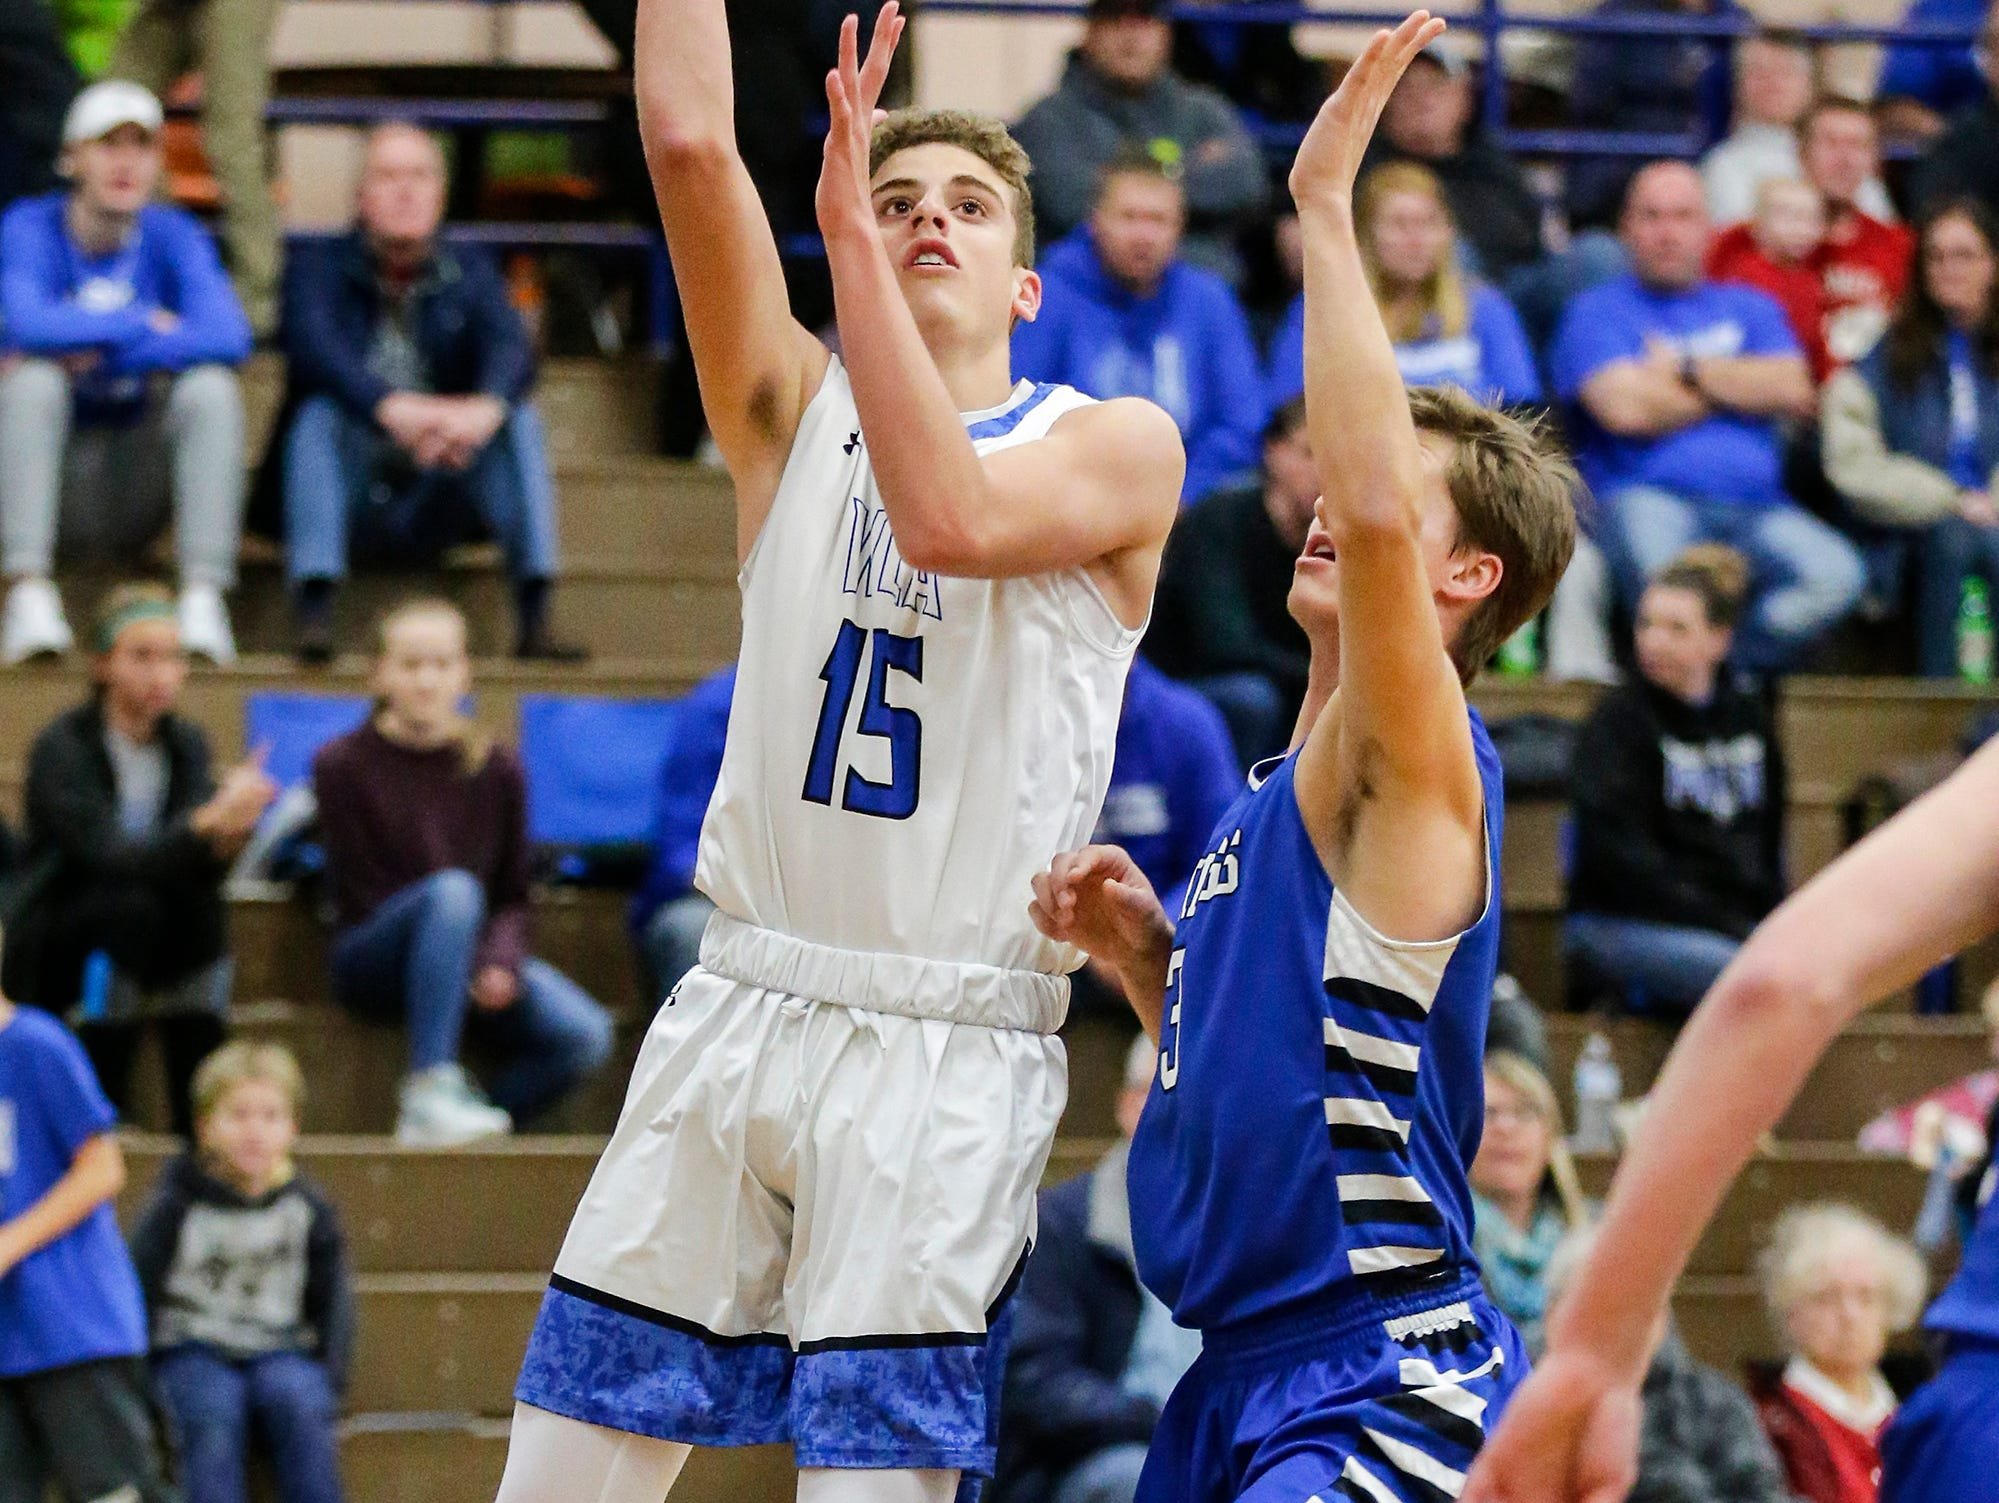 Winnebago Lutheran Academy boys basketball's Zach Loehr makes this shot against St. Mary's Springs Academy's Mitch Waechter Tuesday, January 8, 2019 during their game in Fond du Lac. Winnebago Lutheran Academy won the game 69-66. Doug Raflik/USA TODAY NETWORK-Wisconsin